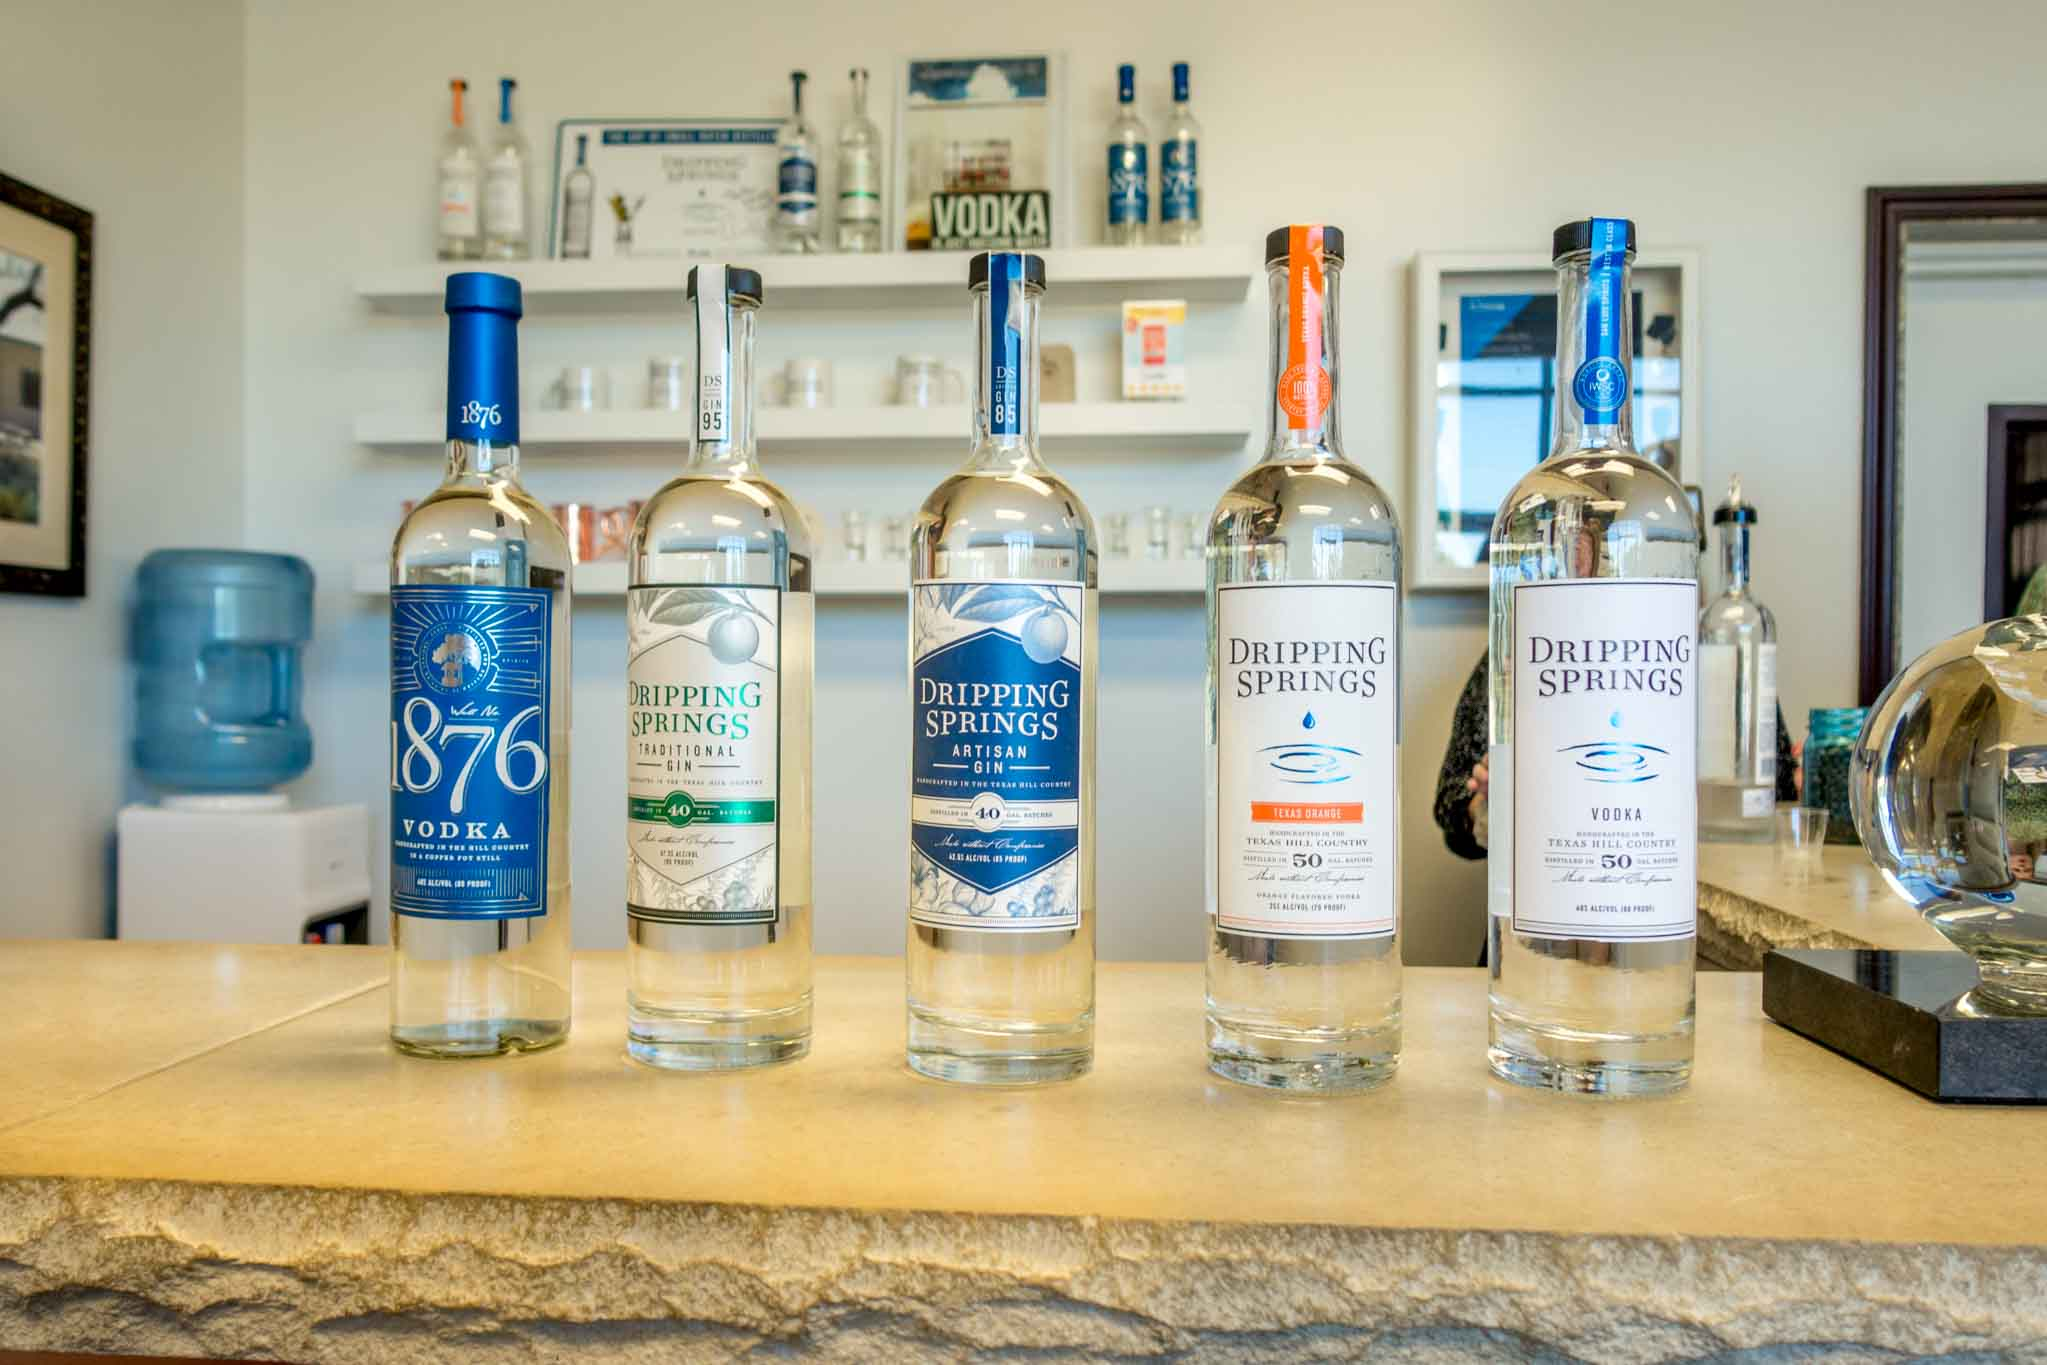 Dripping Springs vodkas and gins in bottles